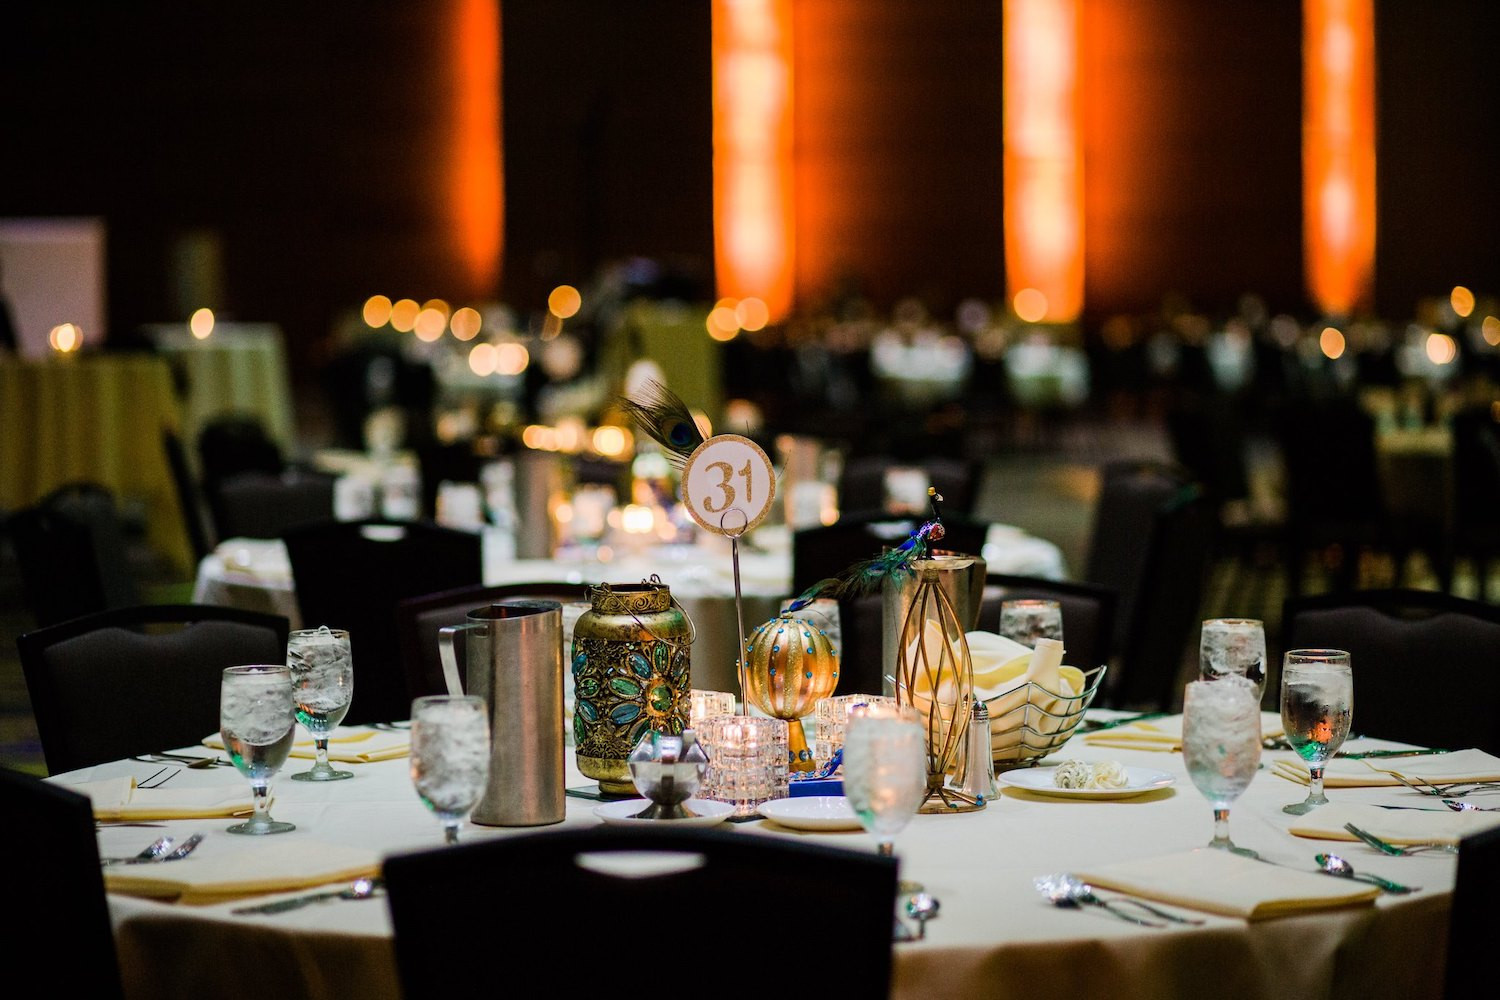 Our professional catering staff will help bring your event to life through the little details